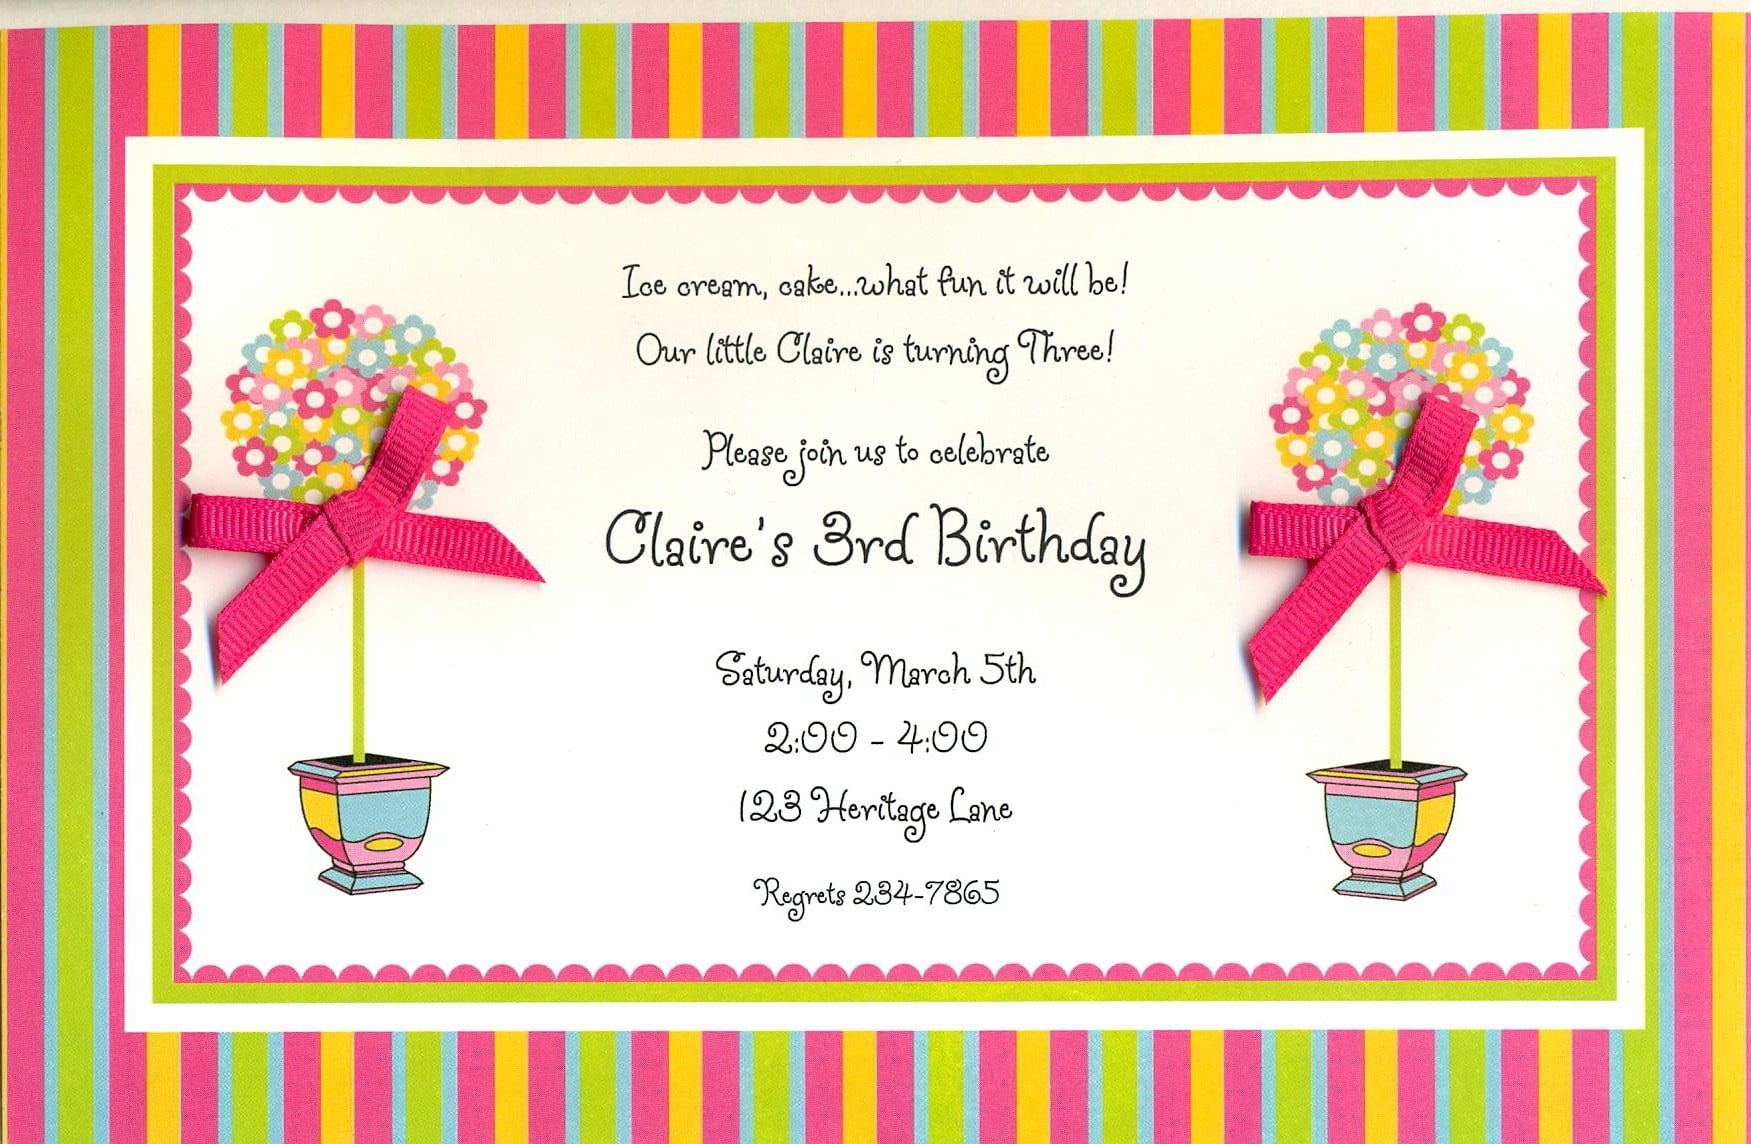 Birthday Dinner Invitation Wording Ideas – Bagvania FREE ...